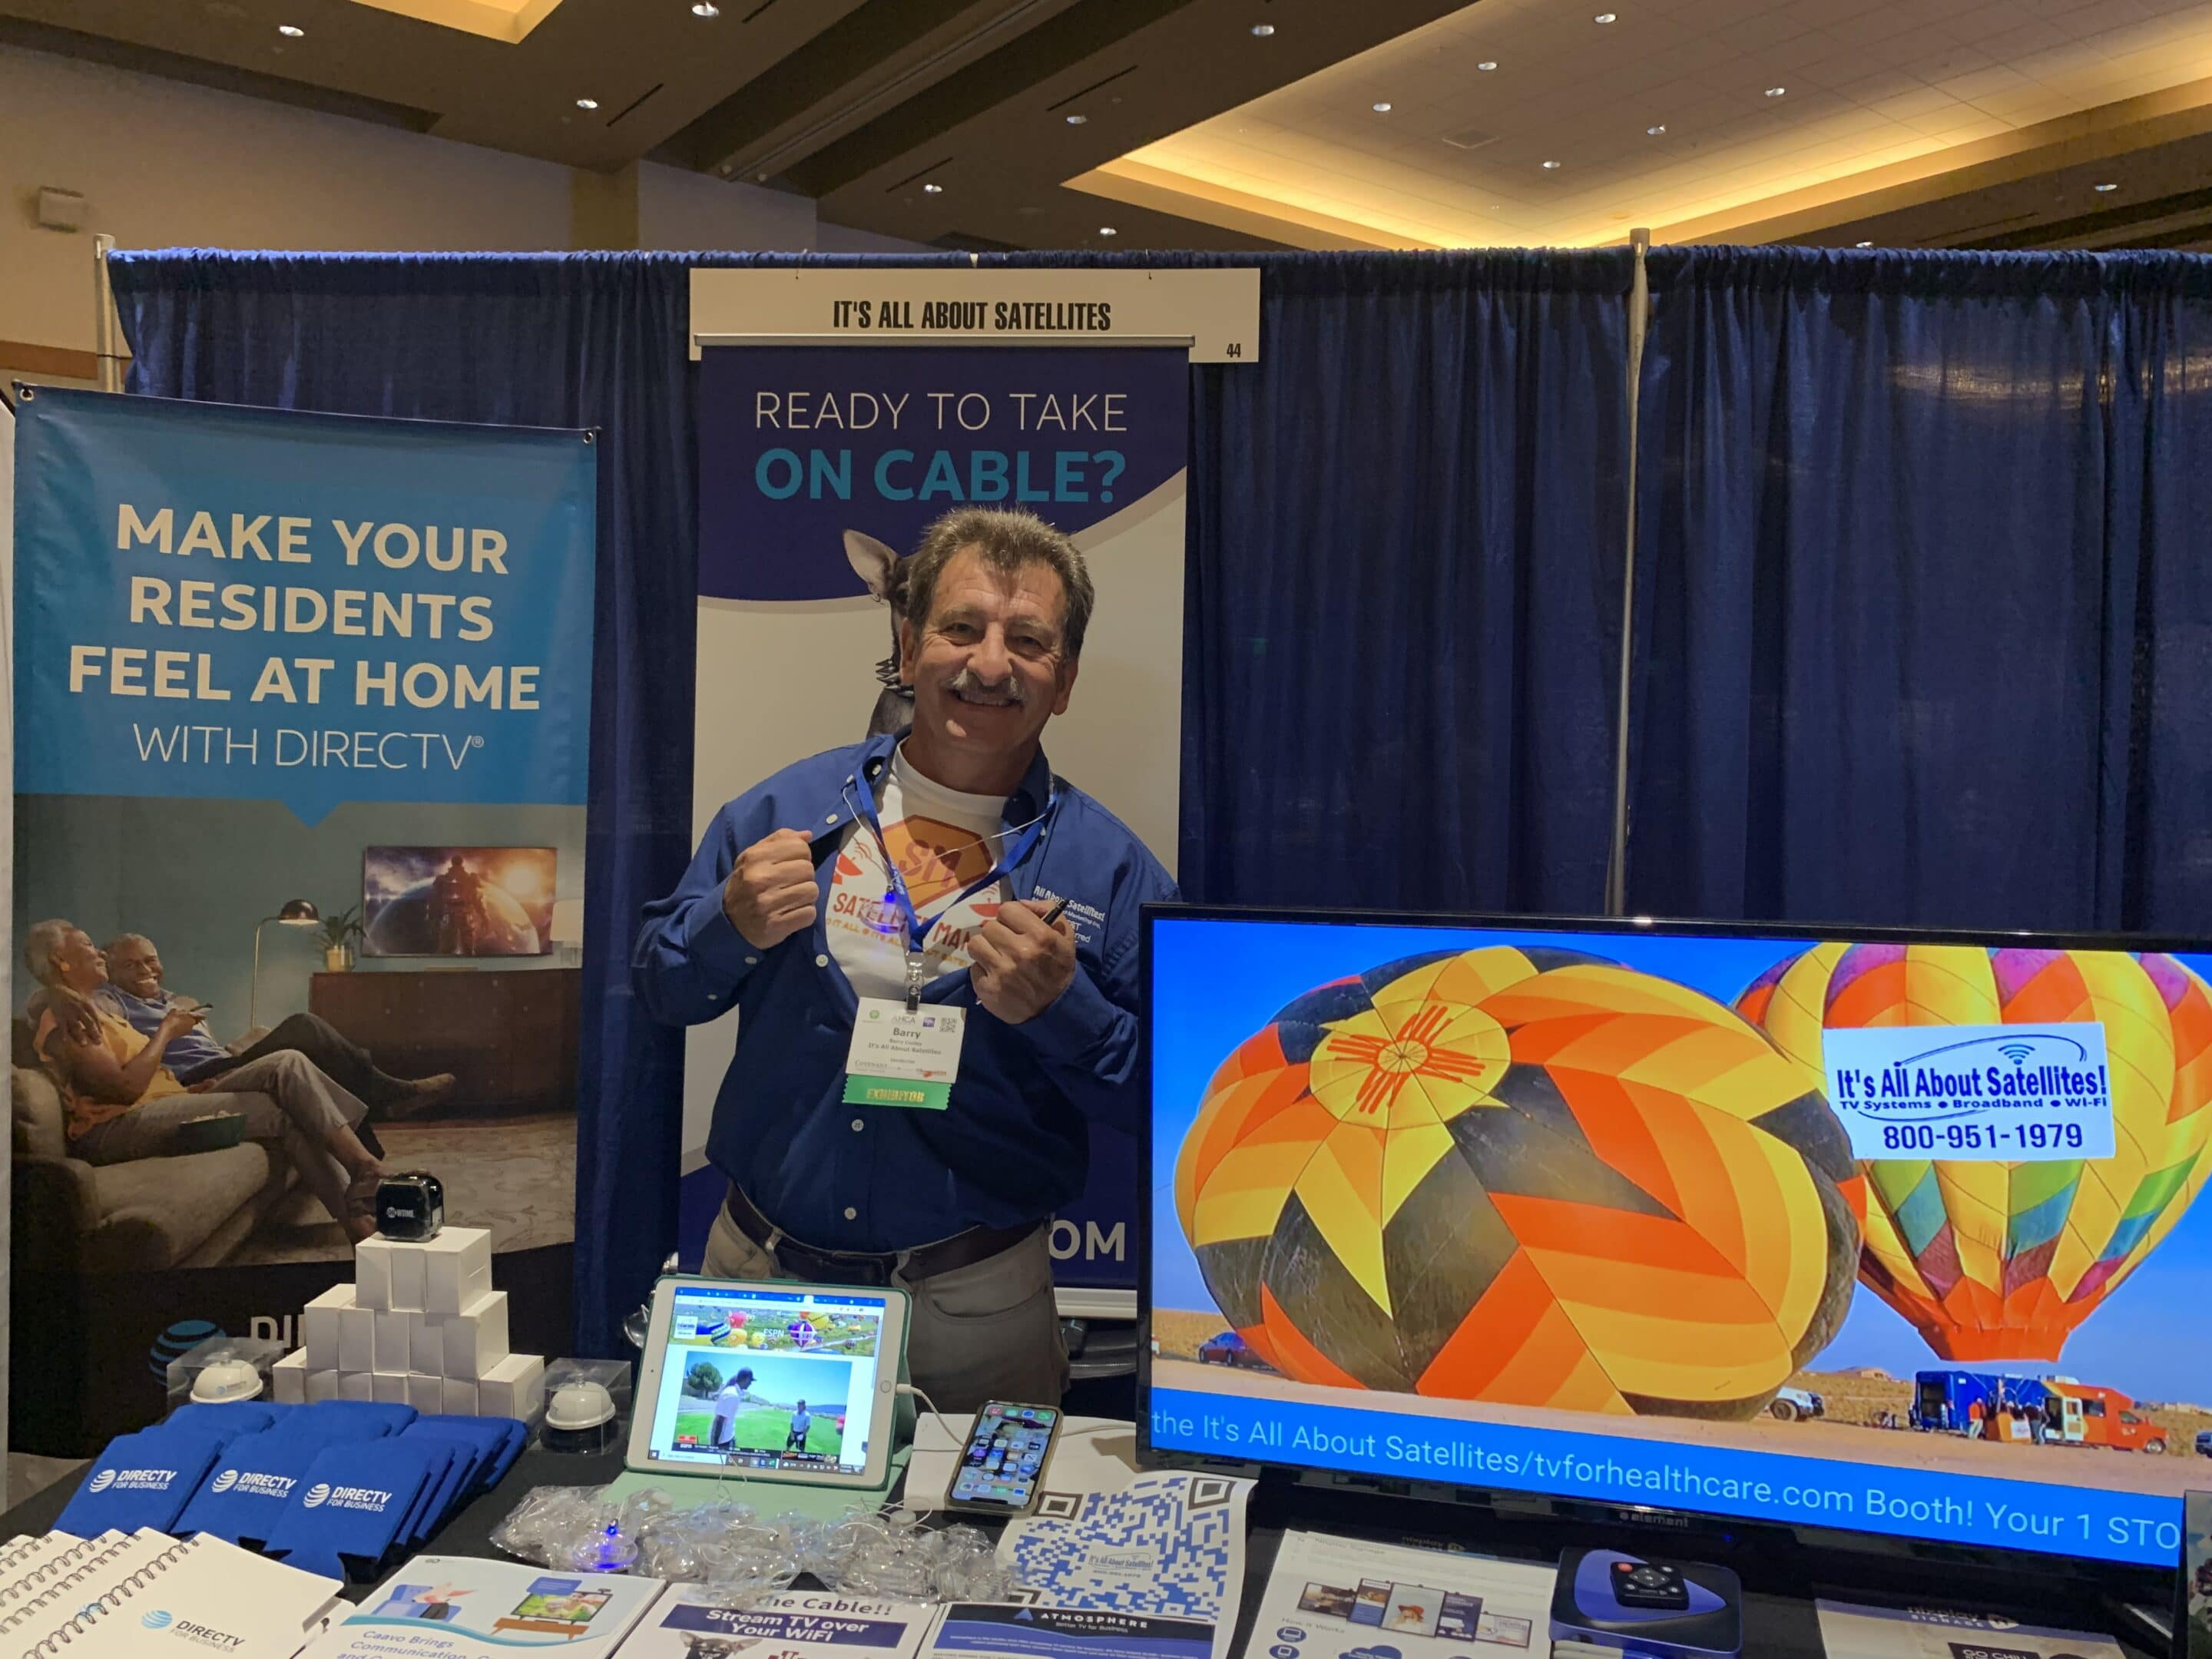 Satellite Man - Barry Conley of Its All About Satellites at the 2021 Arizona Healthcare Association Convention